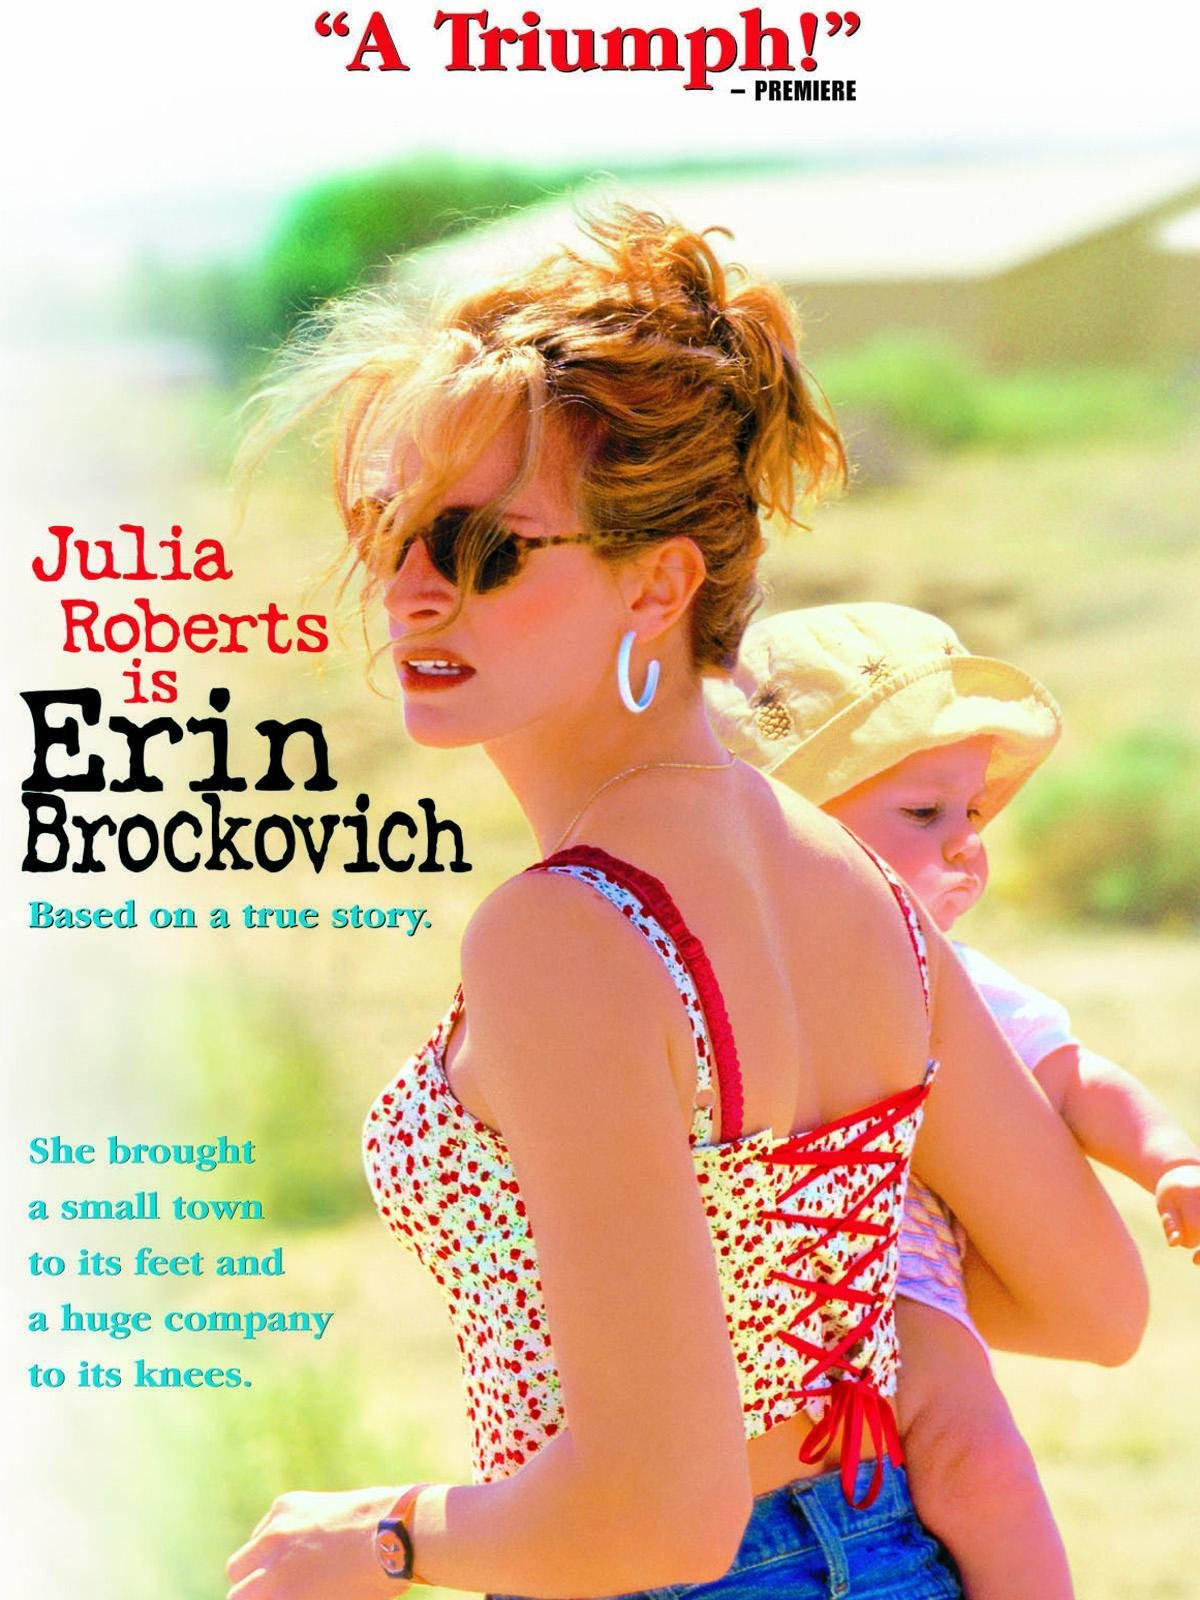 Erin brockovich 2000 1080p bluray x264 timelords download | all.